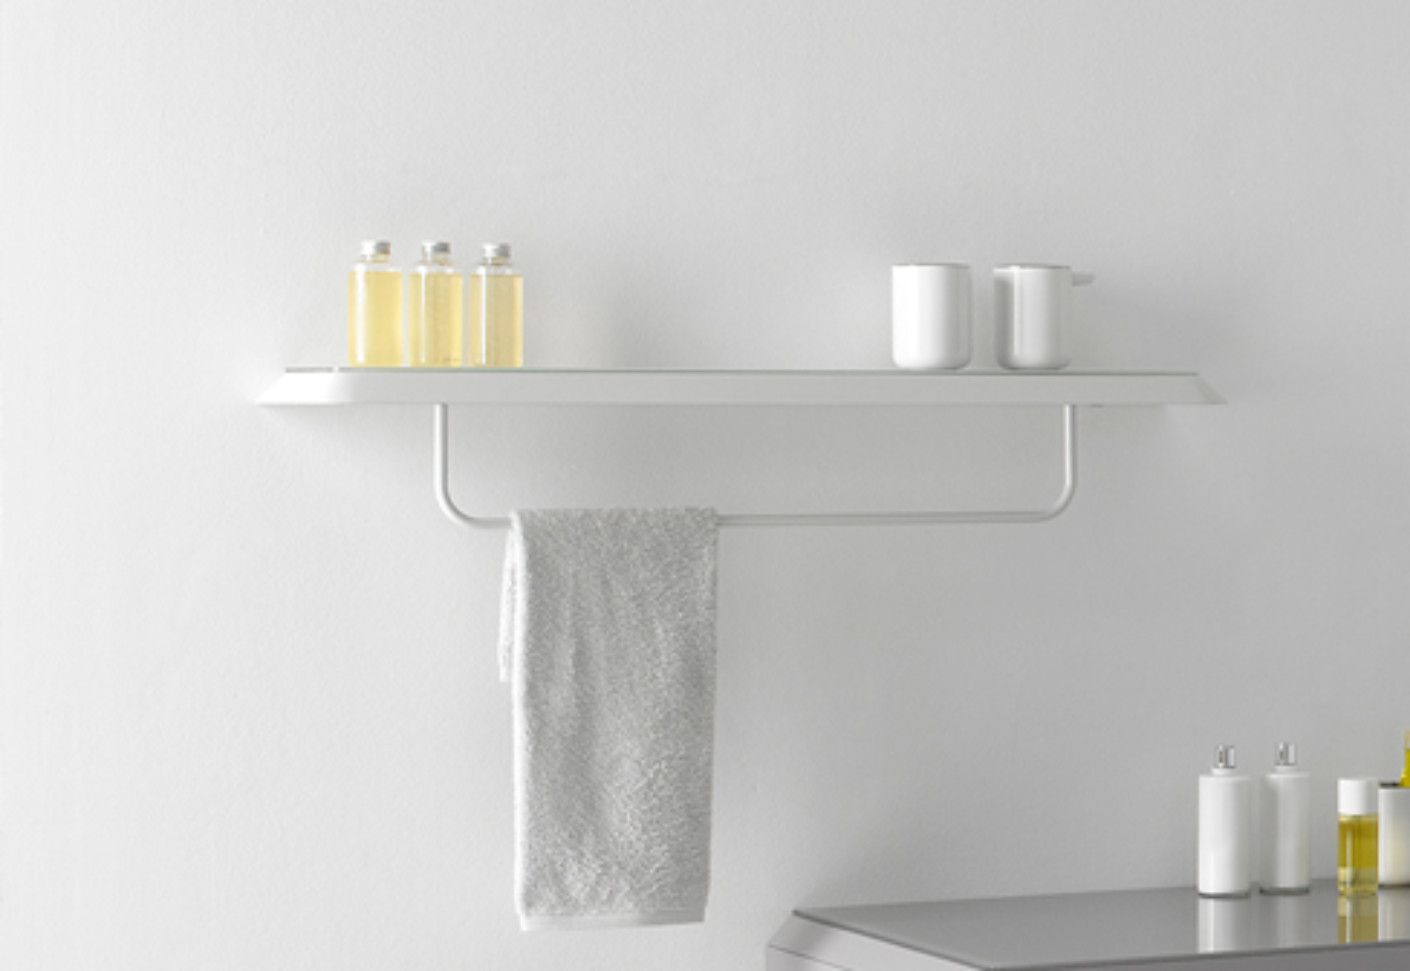 Bathroom Shelves Fluent Rack With Towel Rail By Inbani At